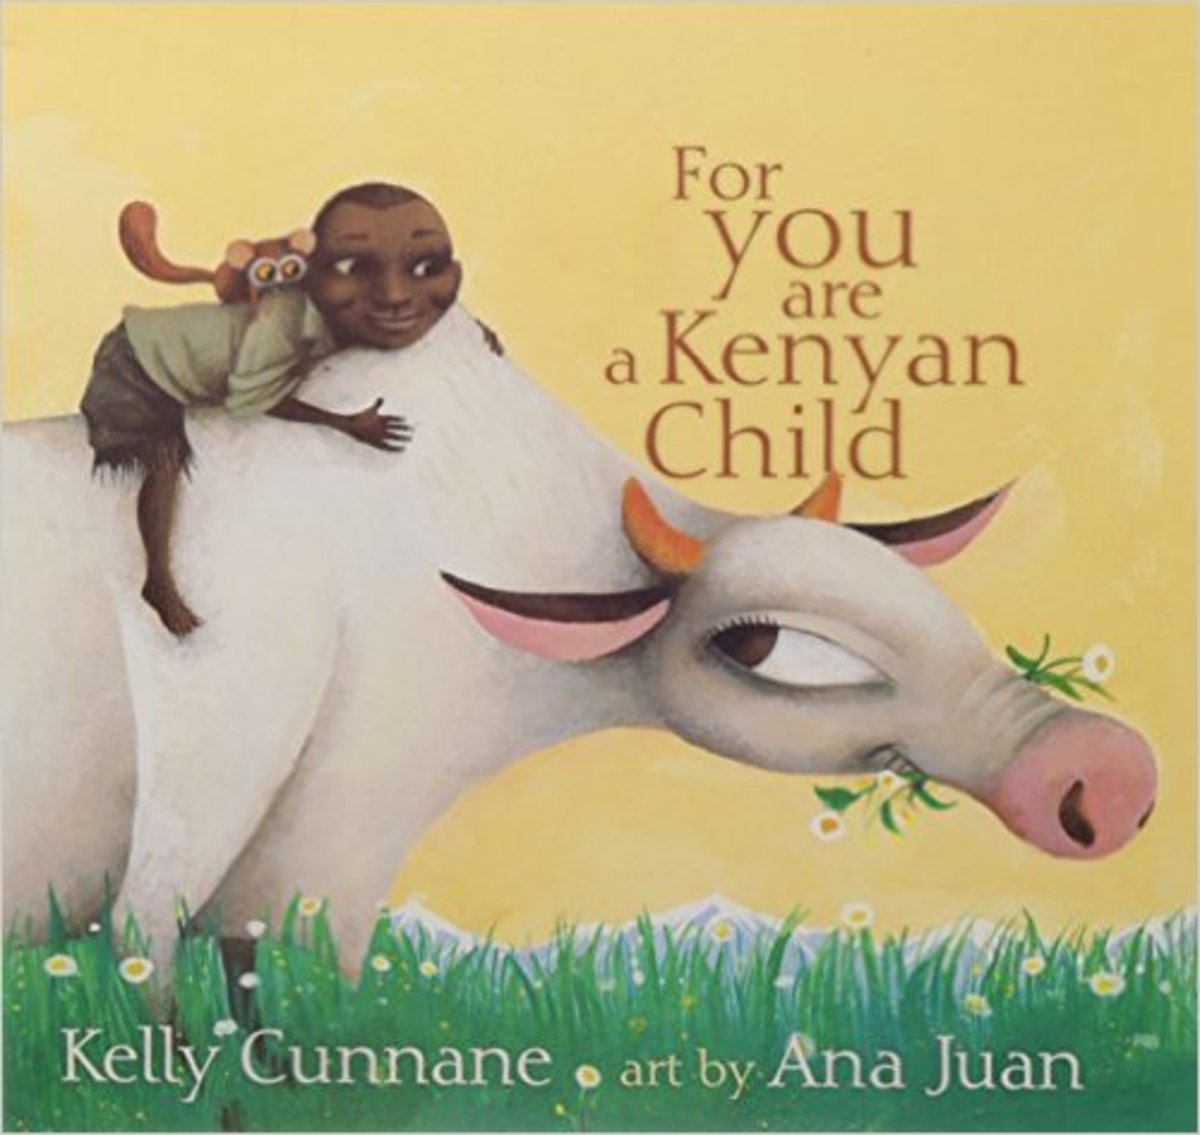 For You Are a Kenyan Child by Kelly Cunnane  - Image credit: amazon.com